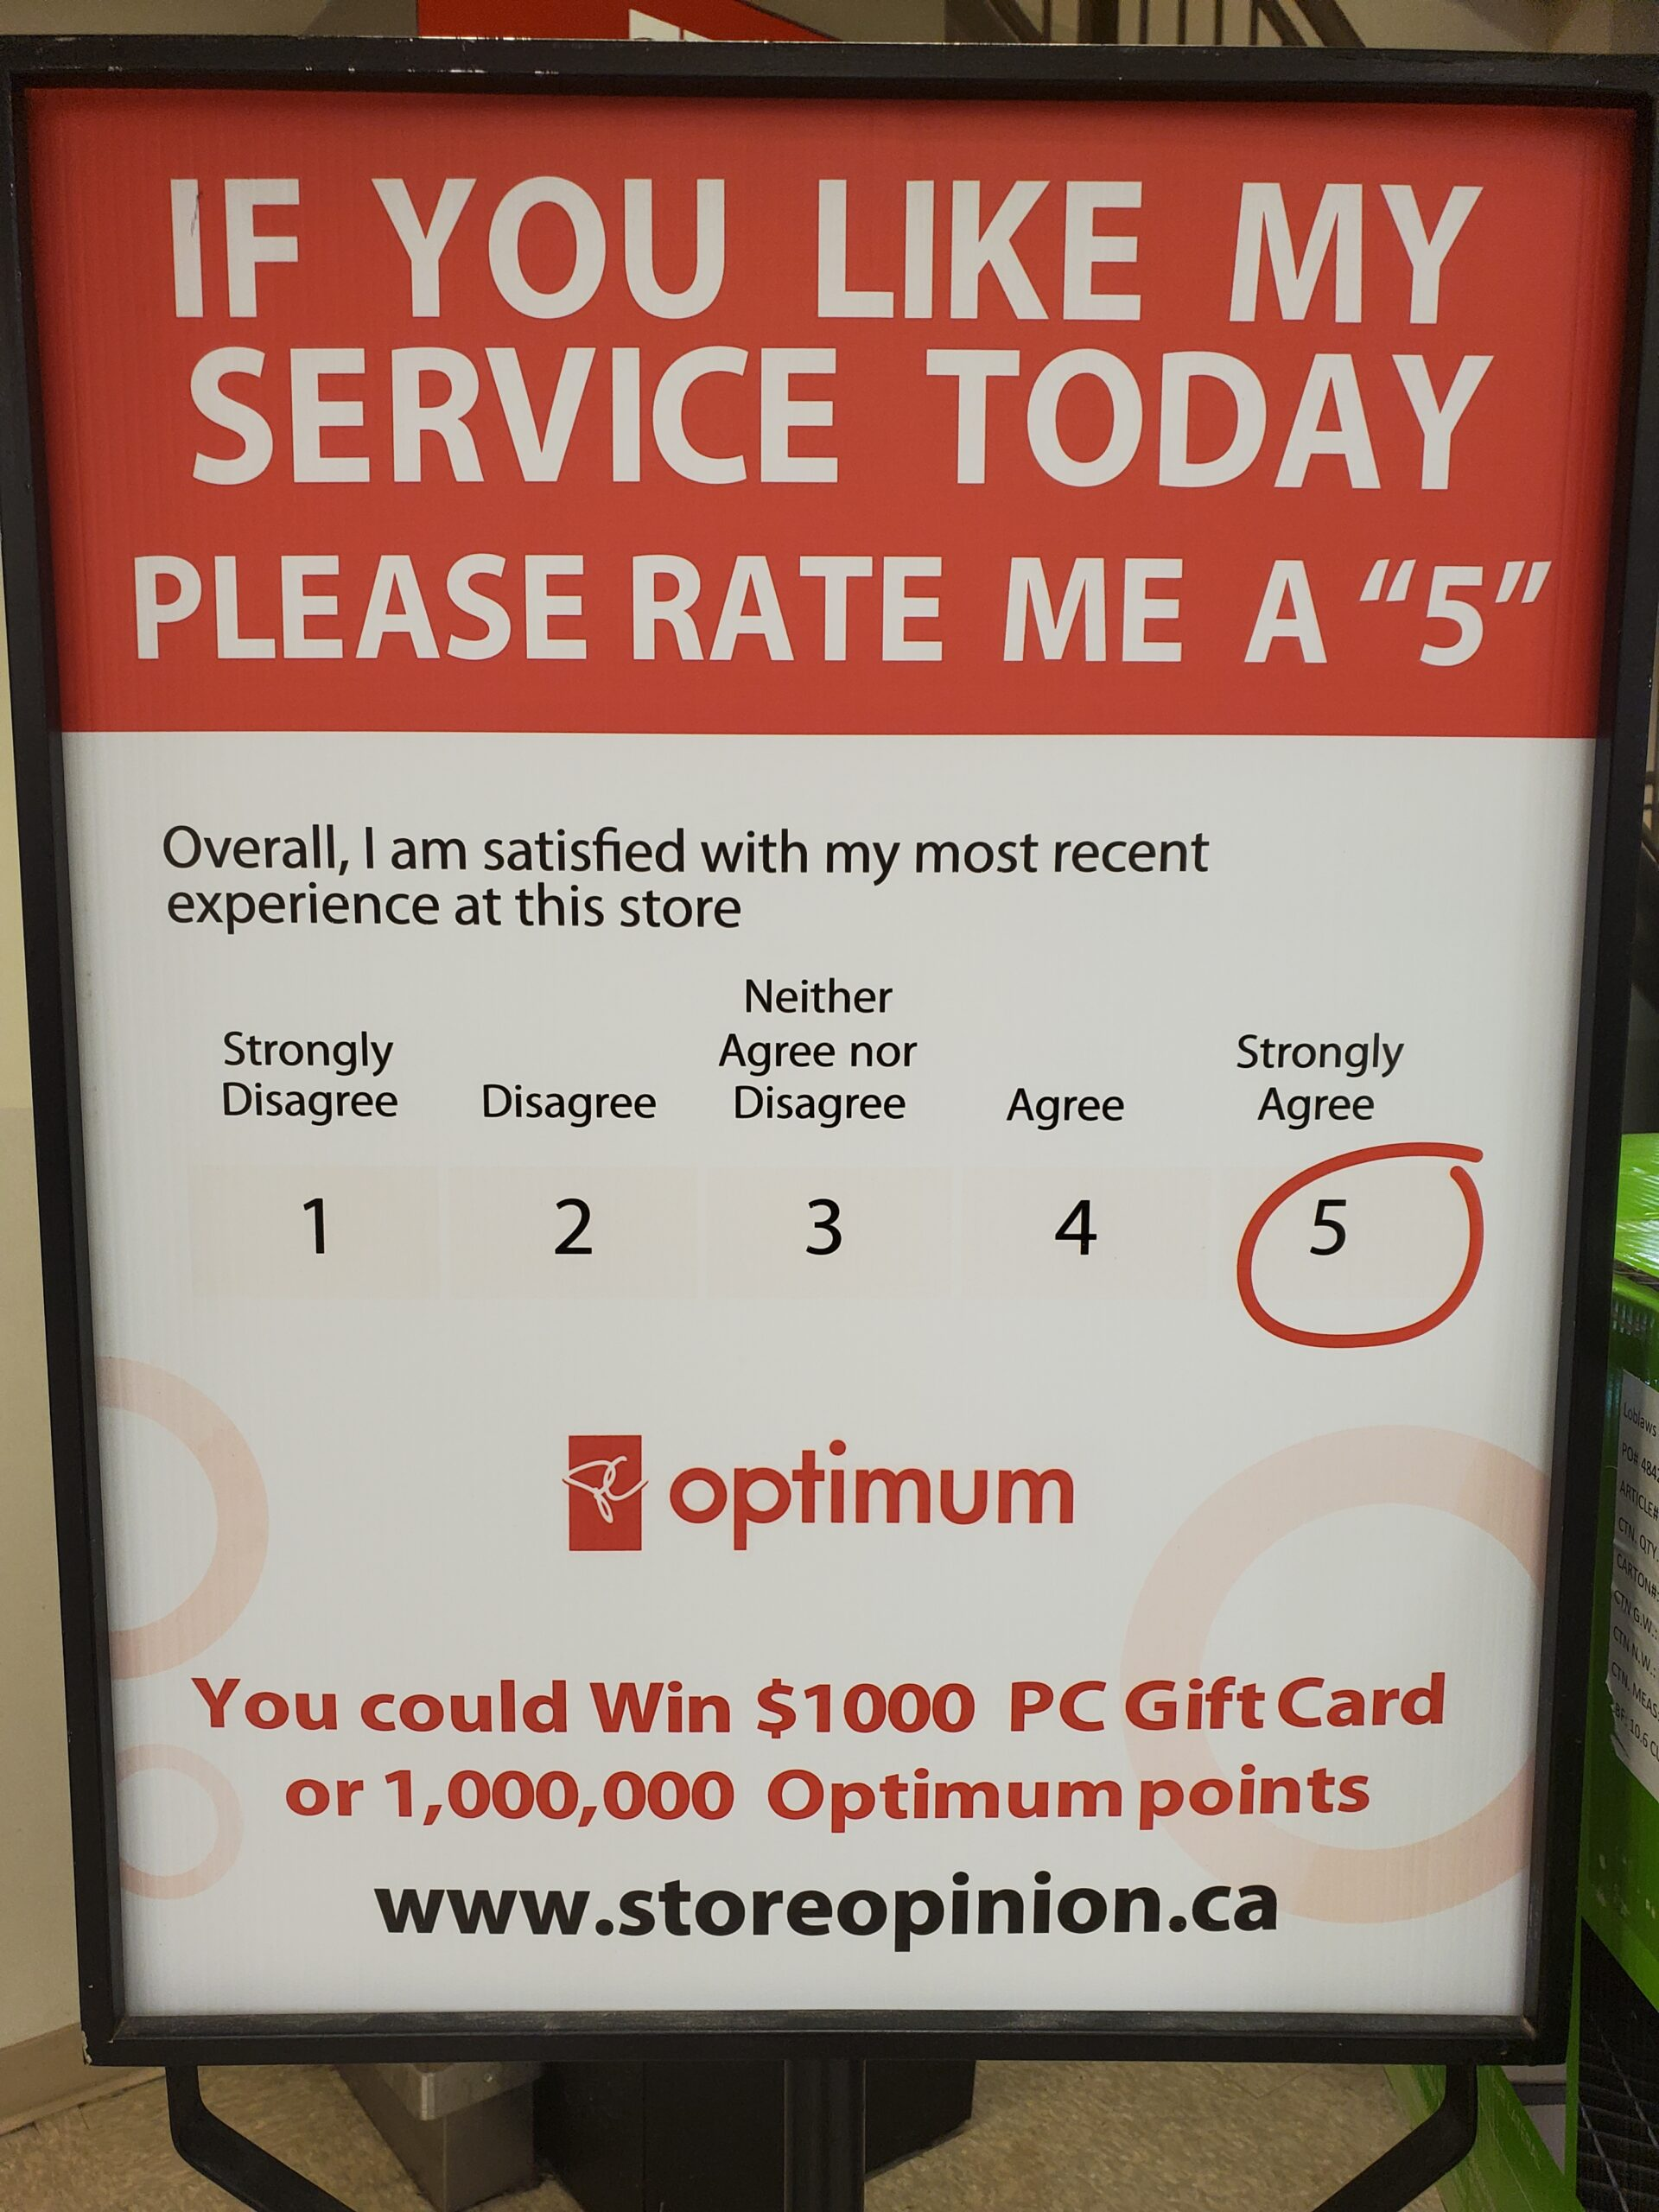 Sign asking customers to rate the service a 5 and run a chance to win a prize.